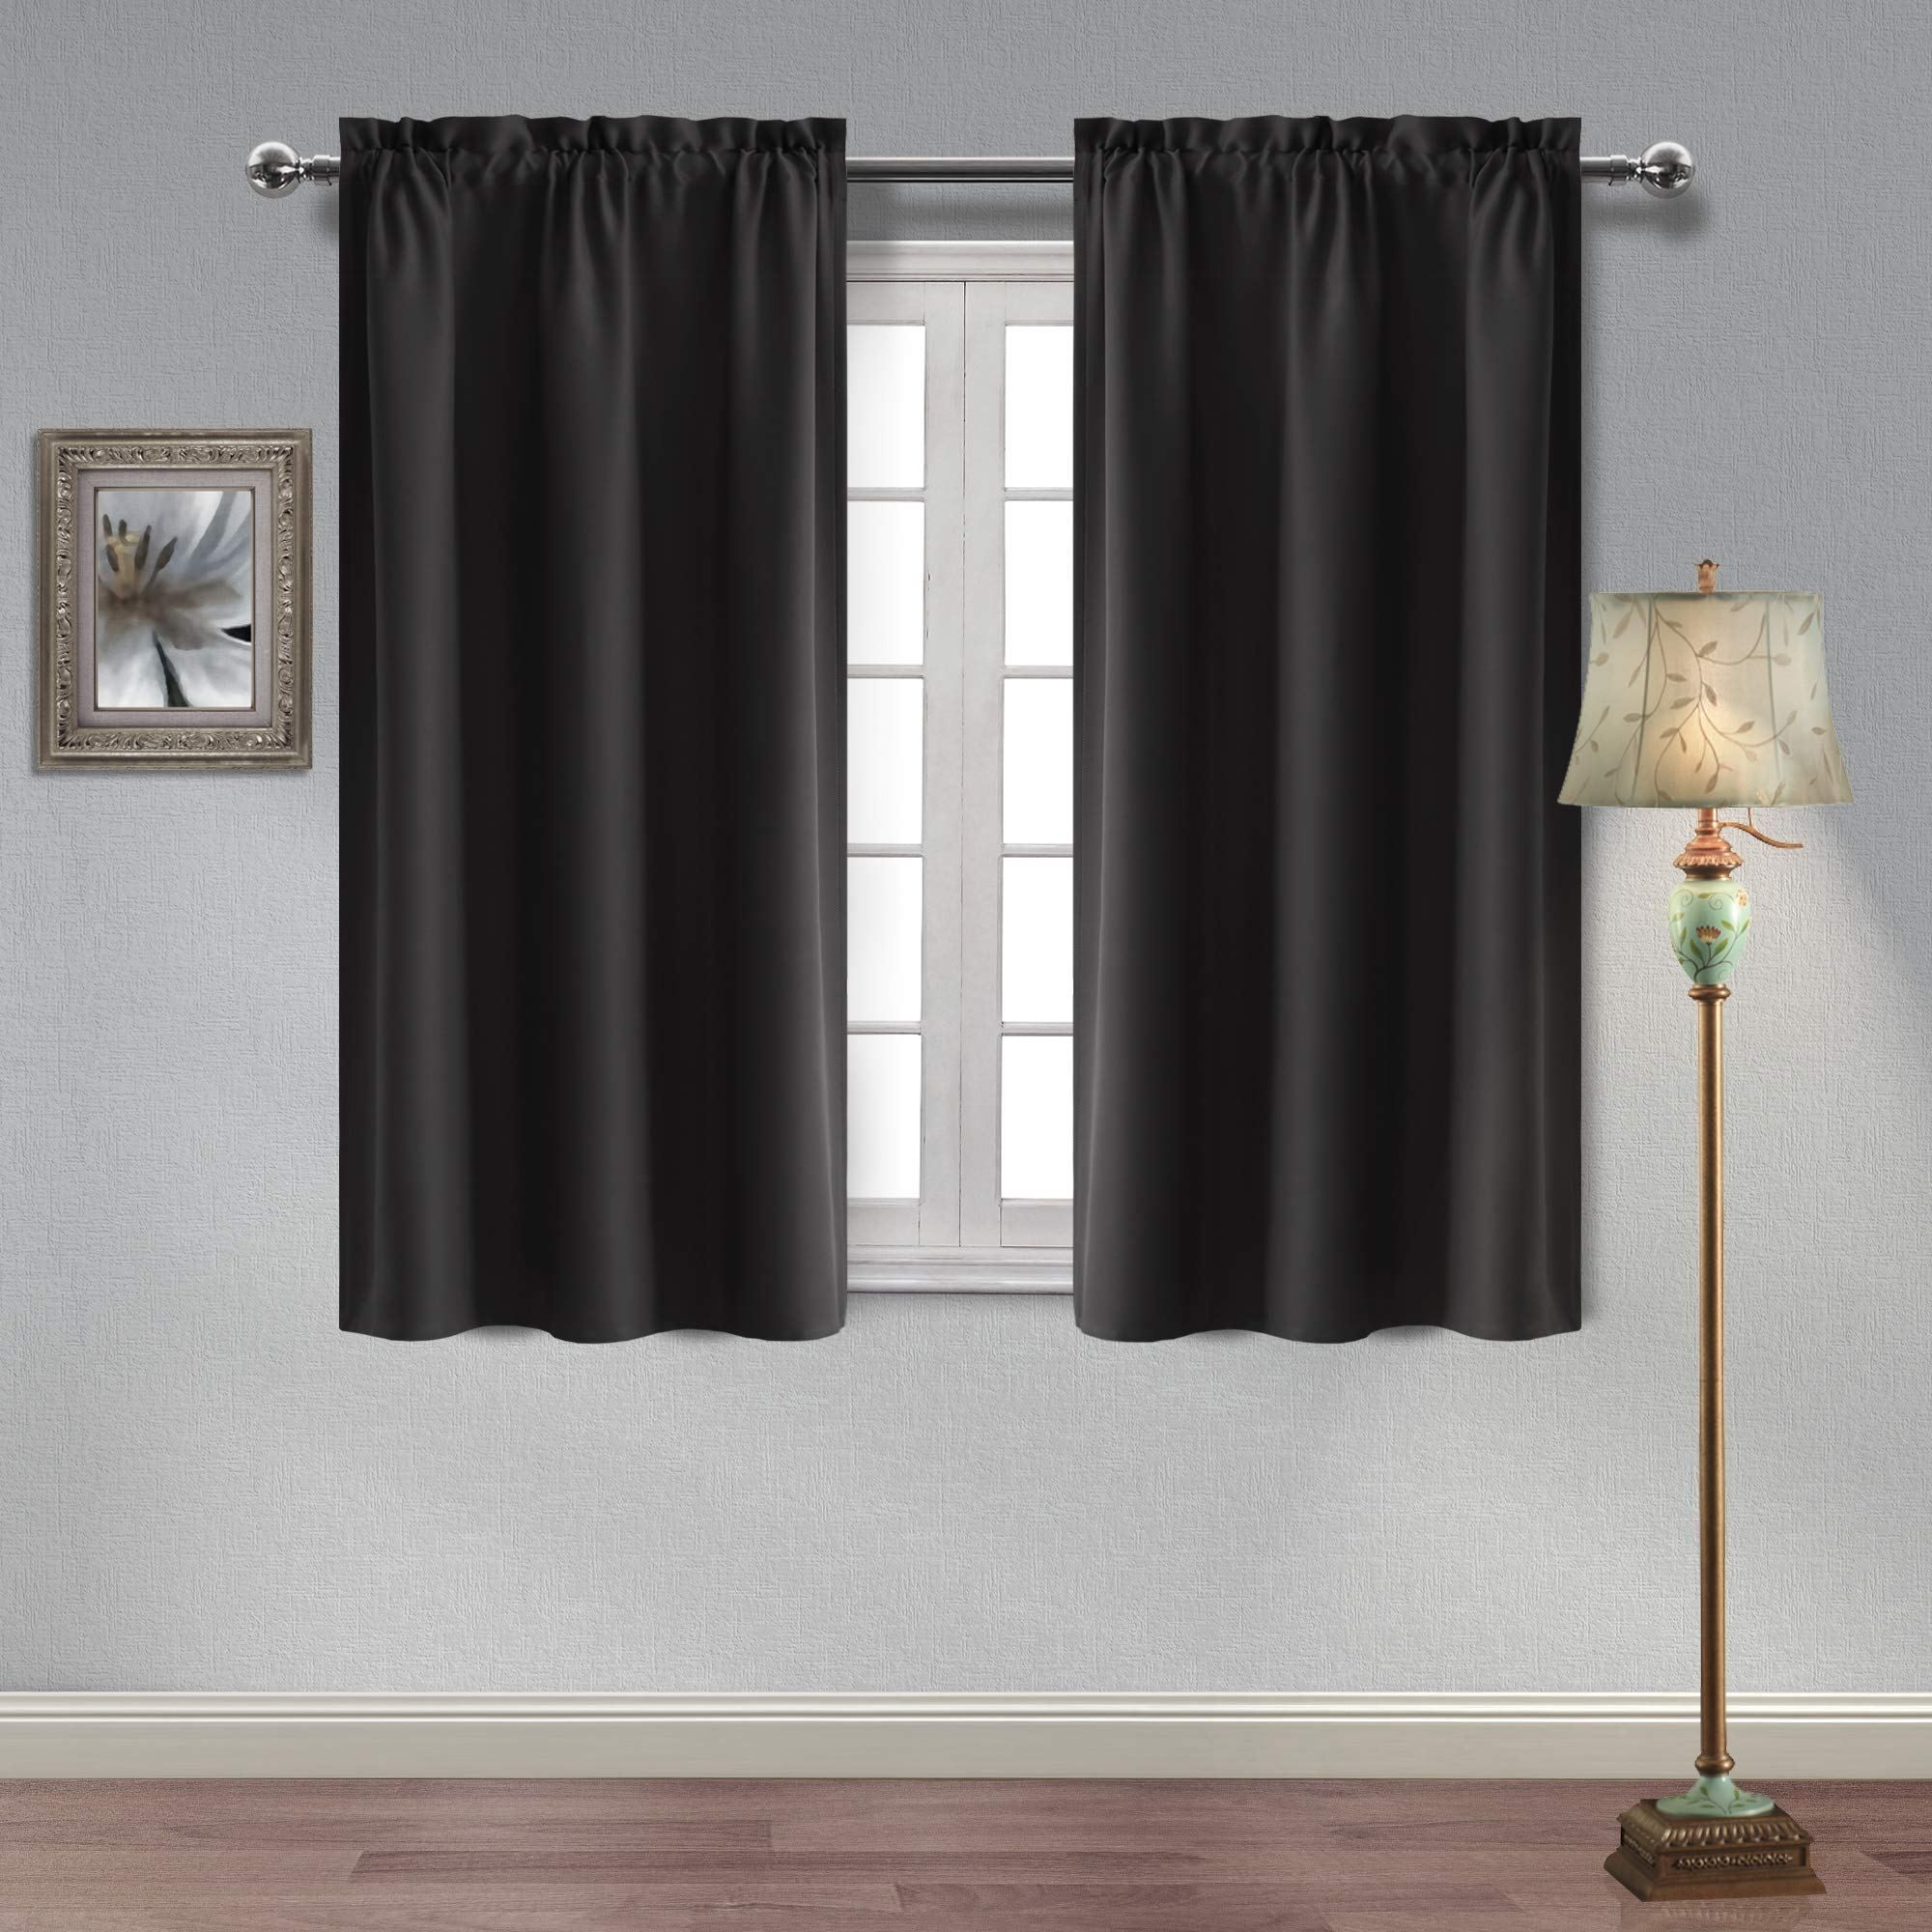 Homedocr Thermal Insulated Blackout Curtains Sun Blocking And